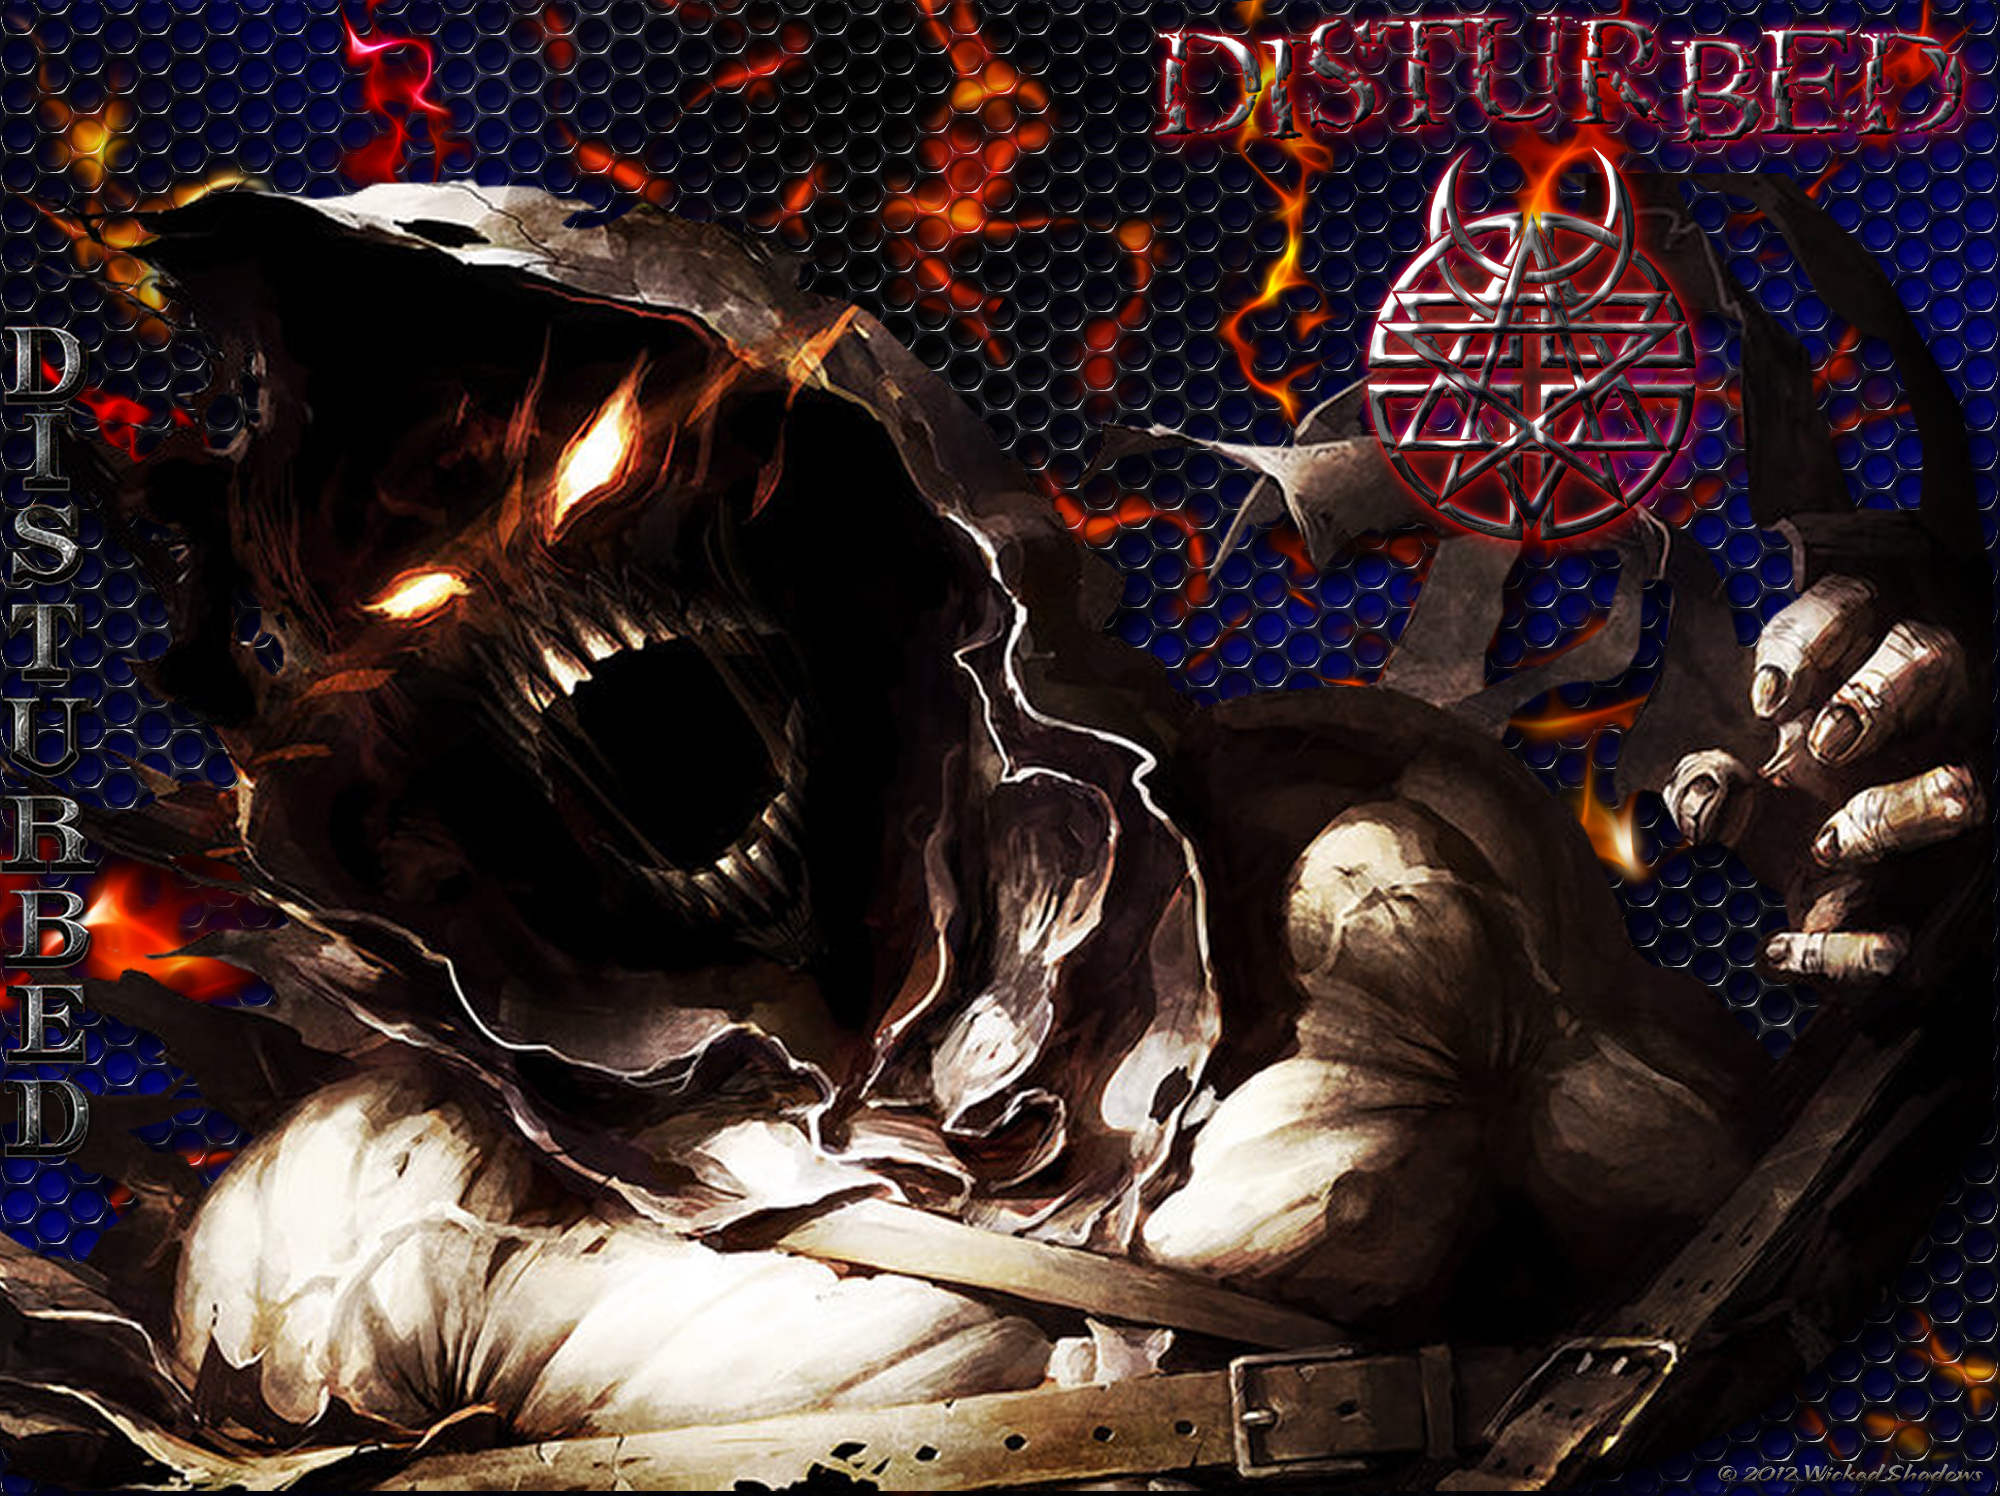 Get Disturbed Heavy Metal Wallpaper Download Wallpaper